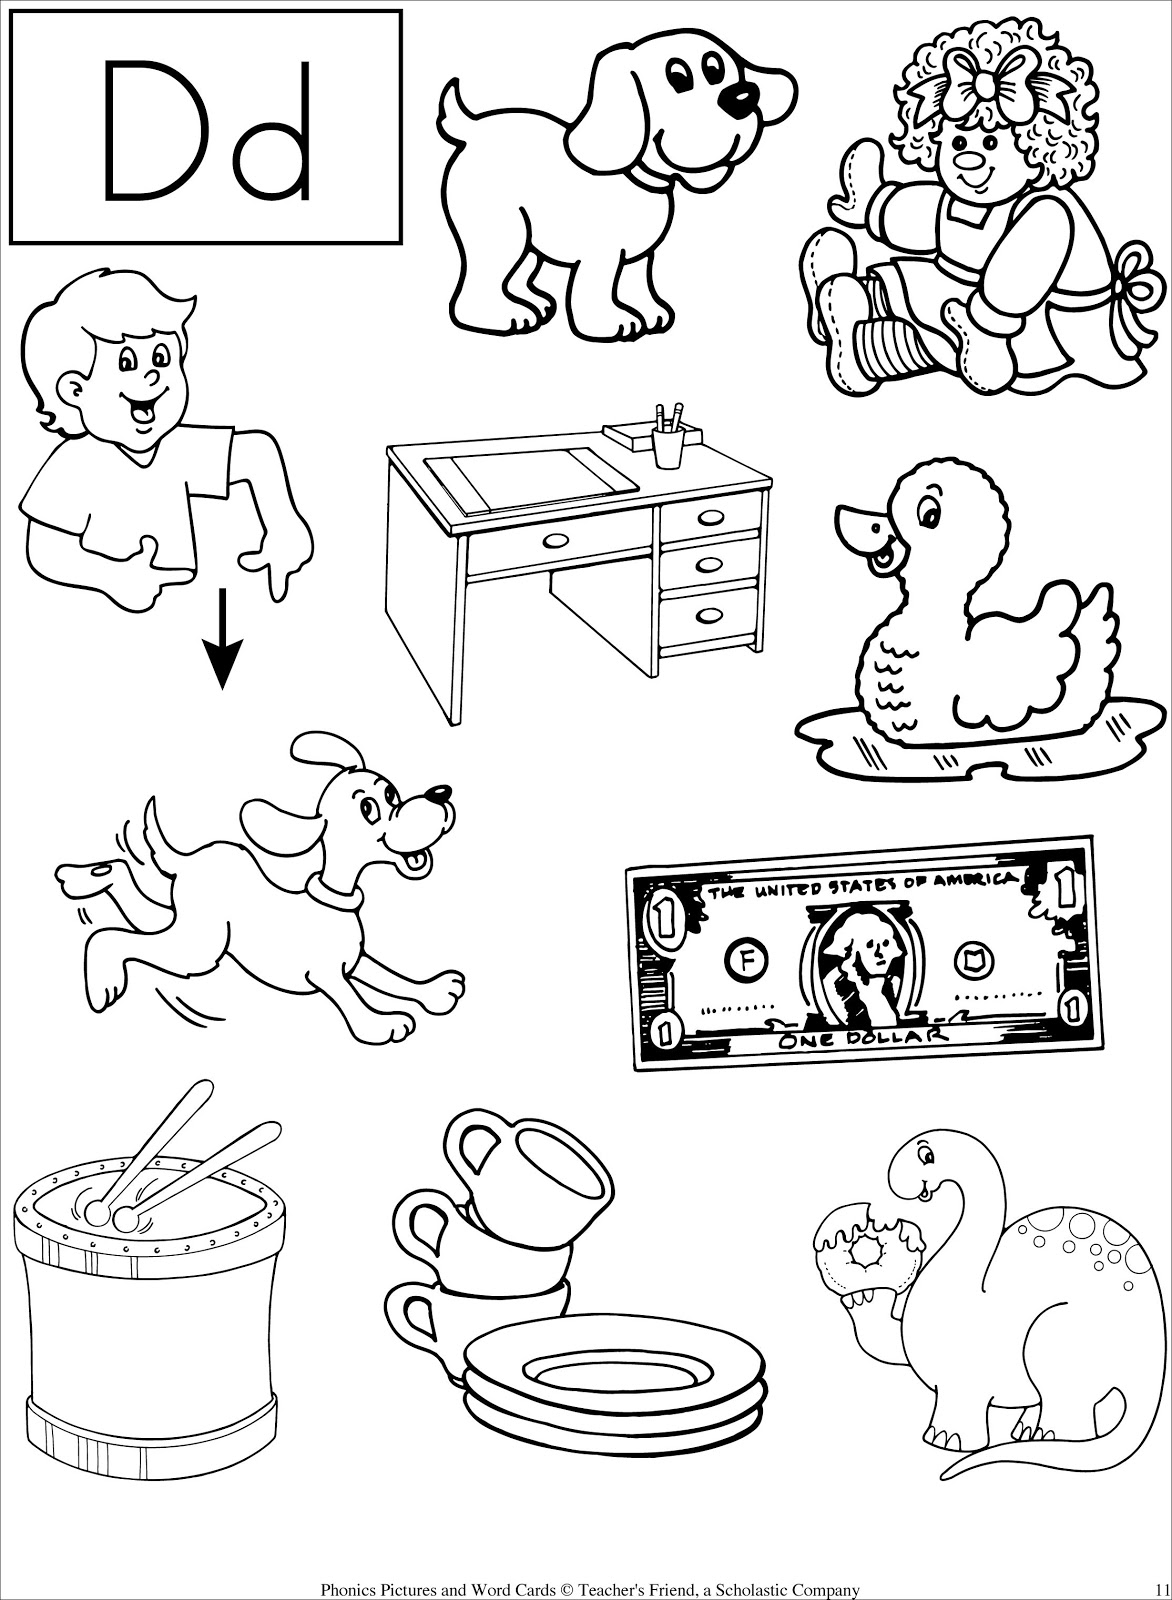 15 Best Images Of Letter D Worksheets For Pre K